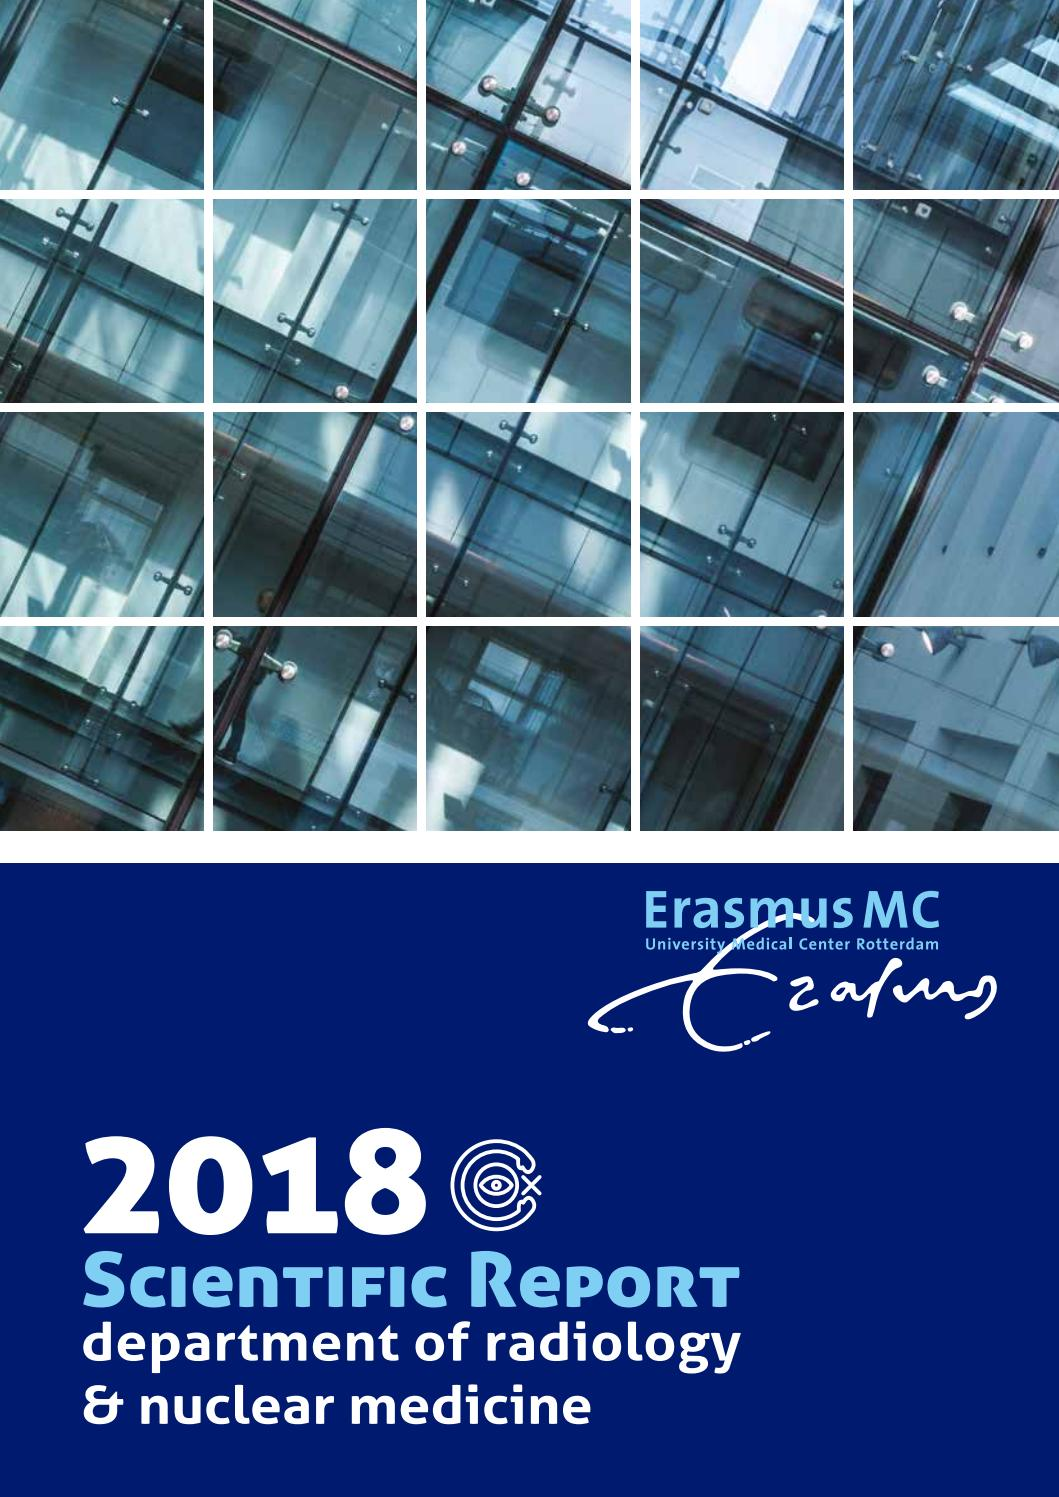 hight resolution of scientic report 2018 by erasmus mc dept of radiology nuclear medicine issuu